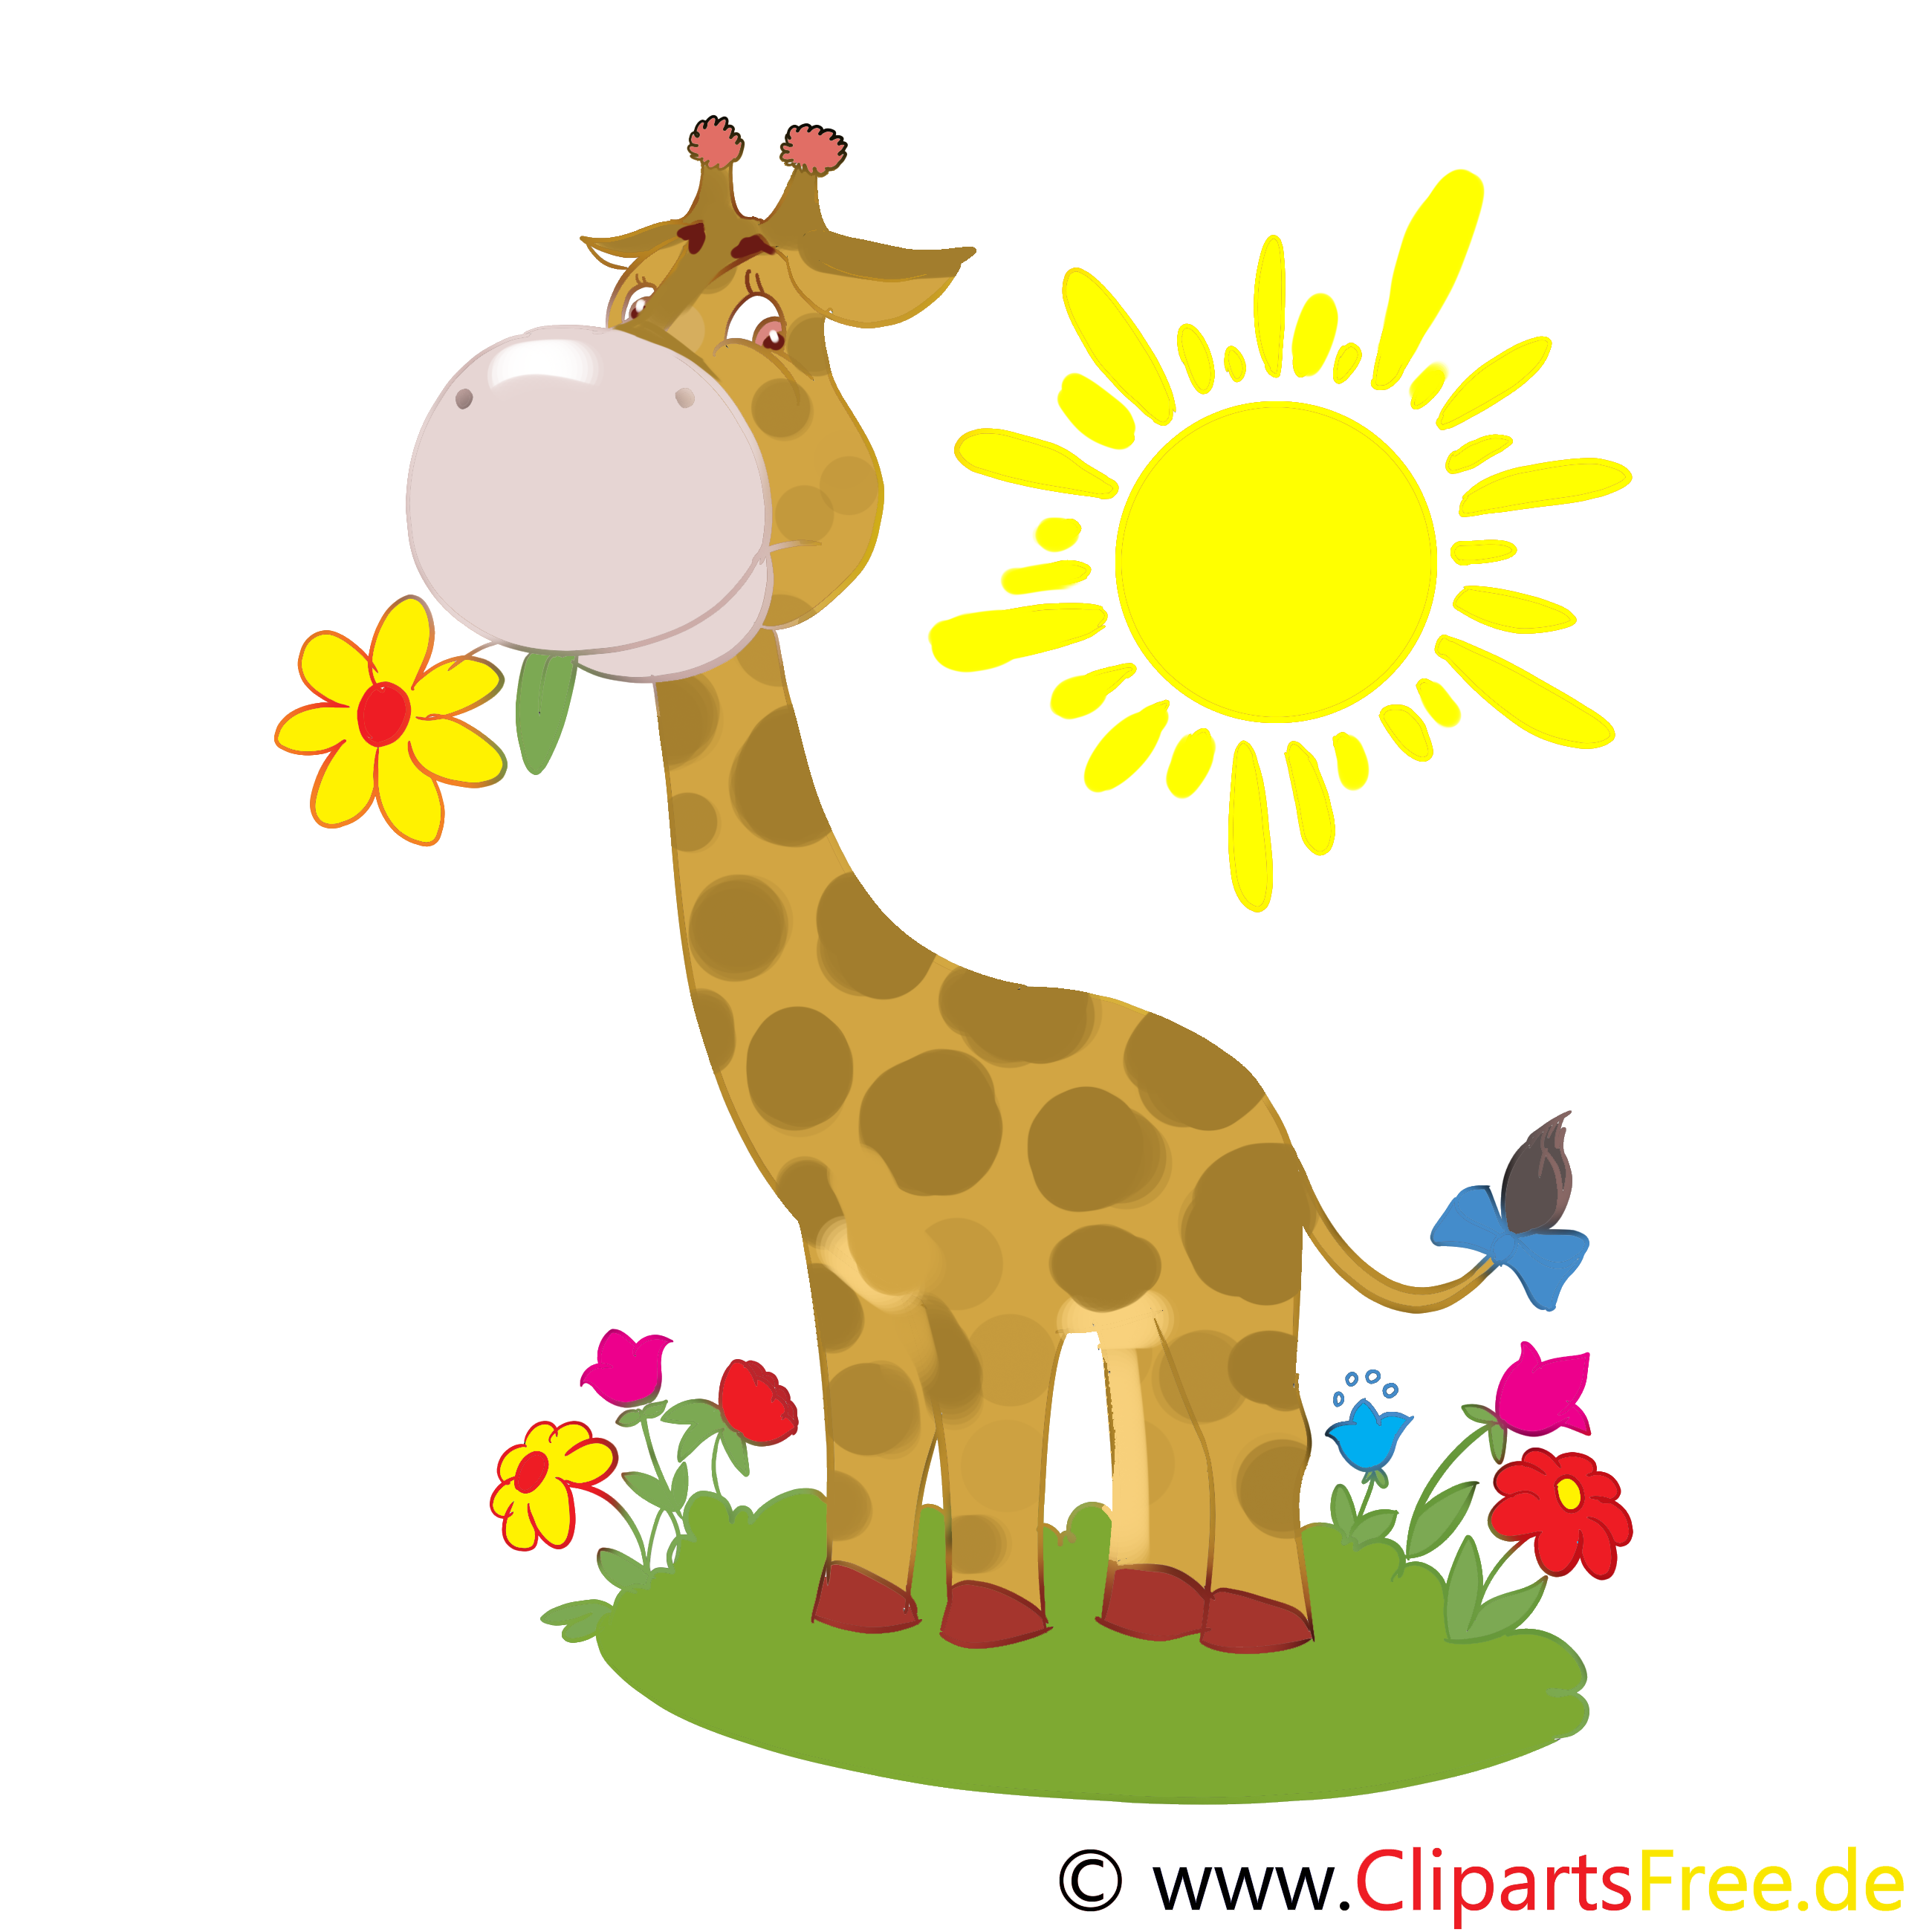 Girafe animal illustration à télécharger gratuite